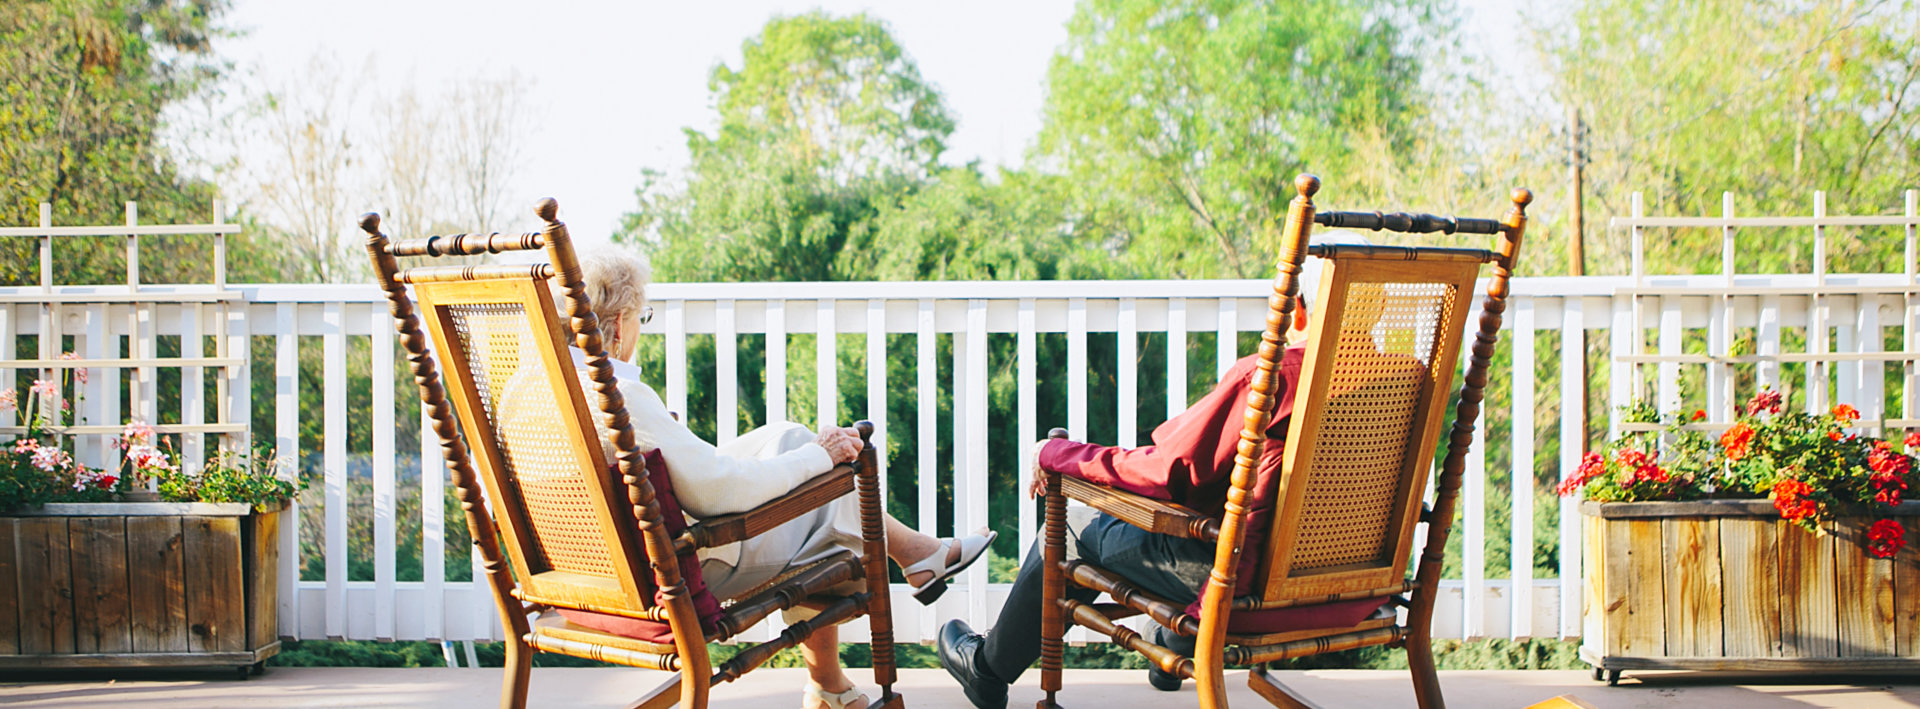 two seniors relaxing in the balcony